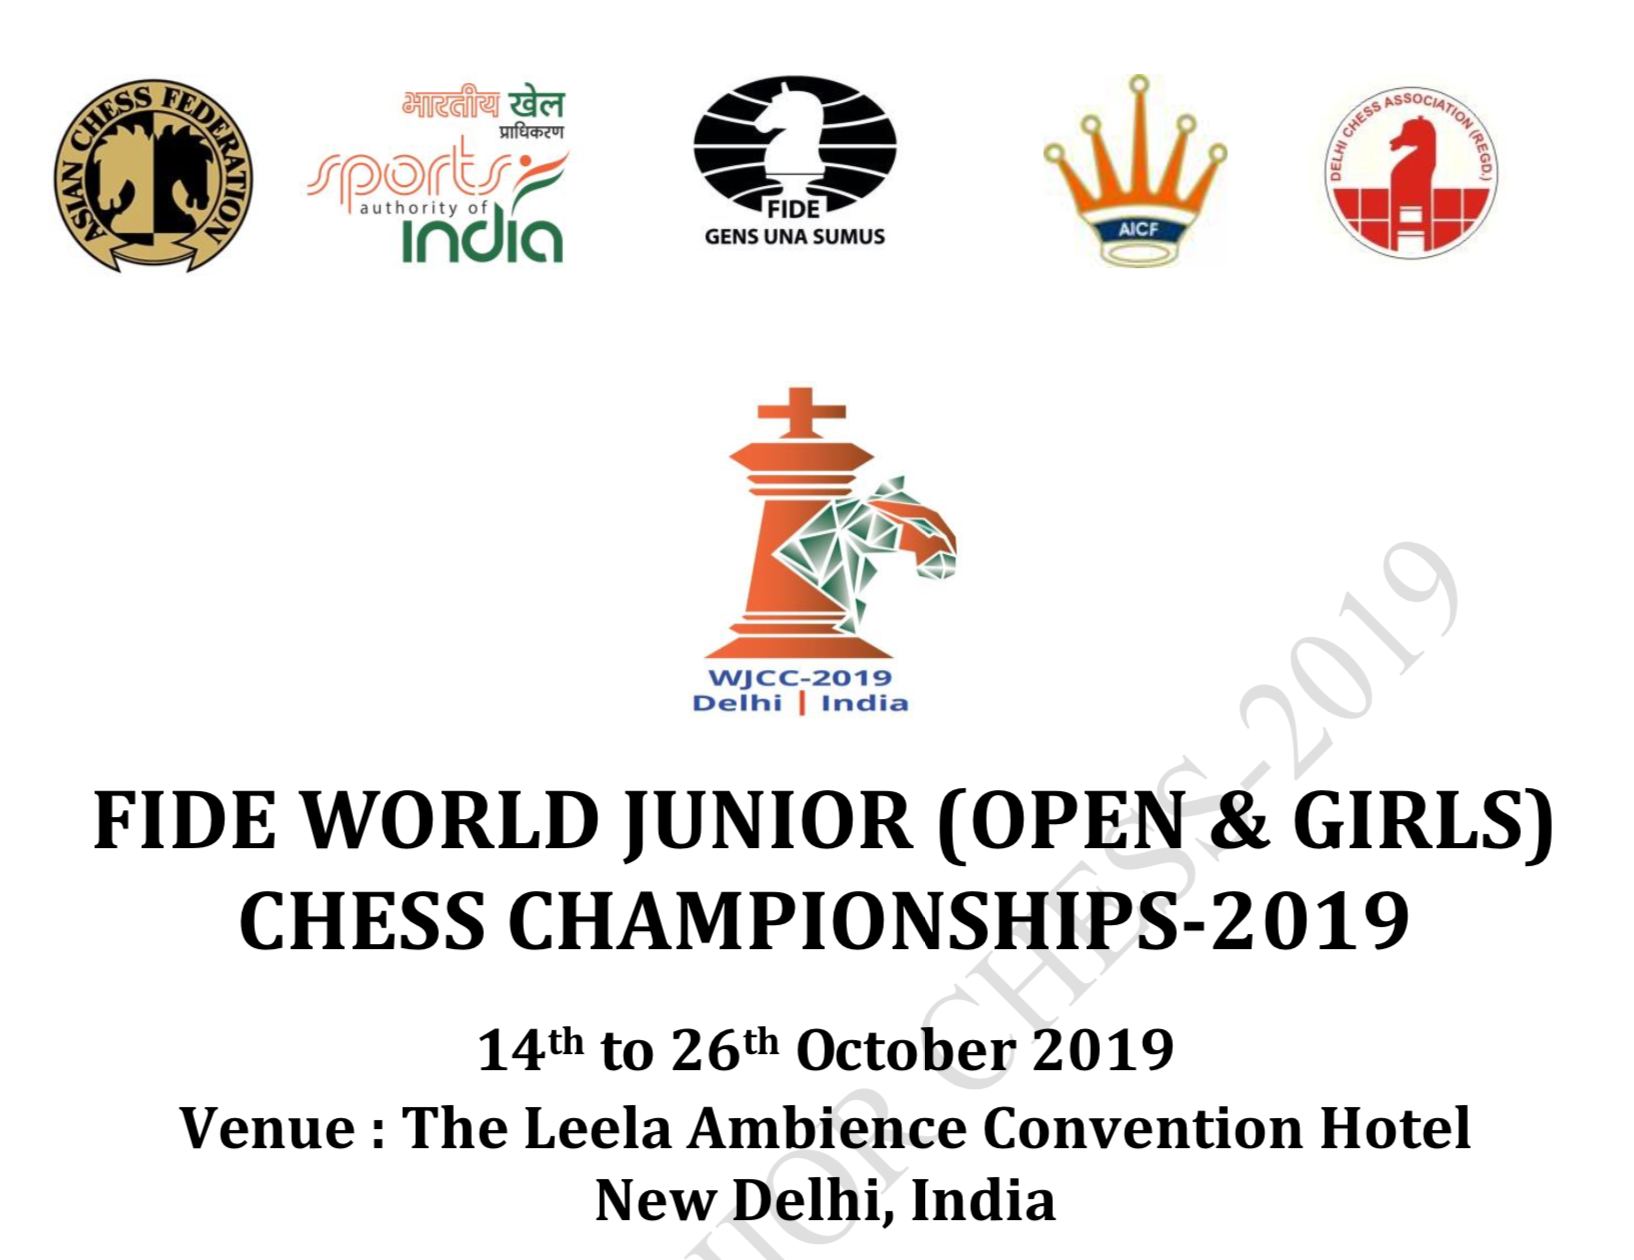 FIDE World Junior Chess Championships 2019 – Malaysian Chess Federation